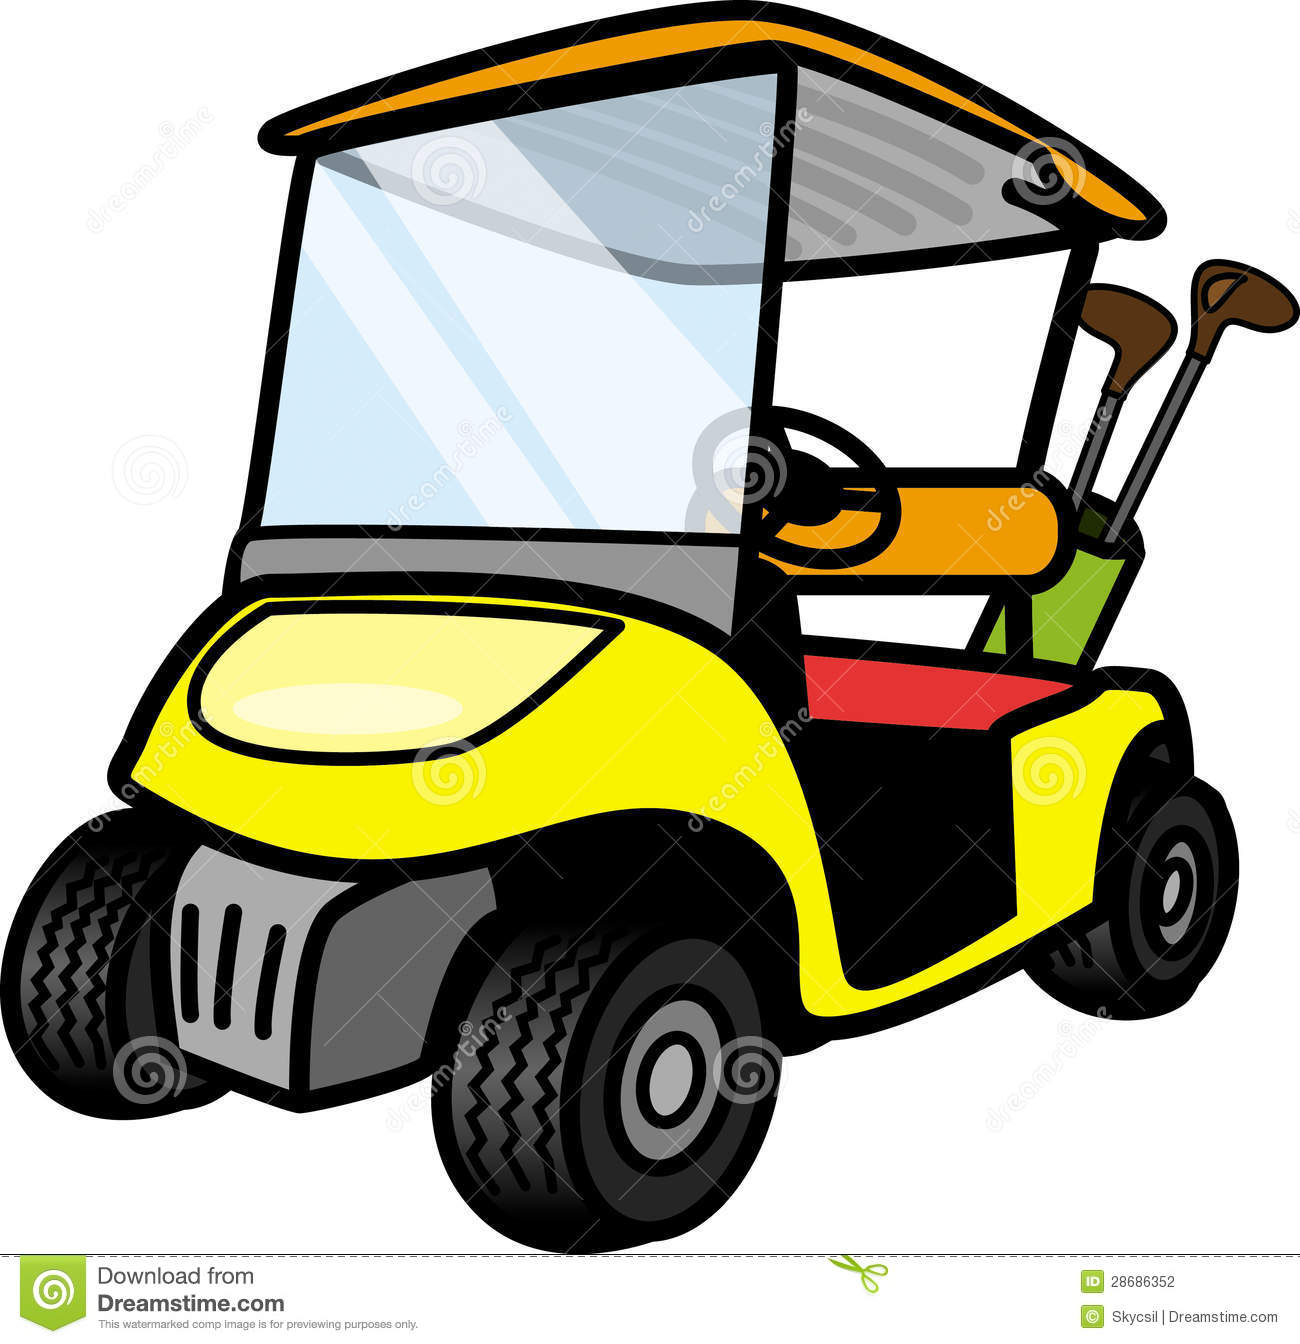 Golf cart clipart free clipart free stock 8+ Golf Cart Clip Art | ClipartLook clipart free stock